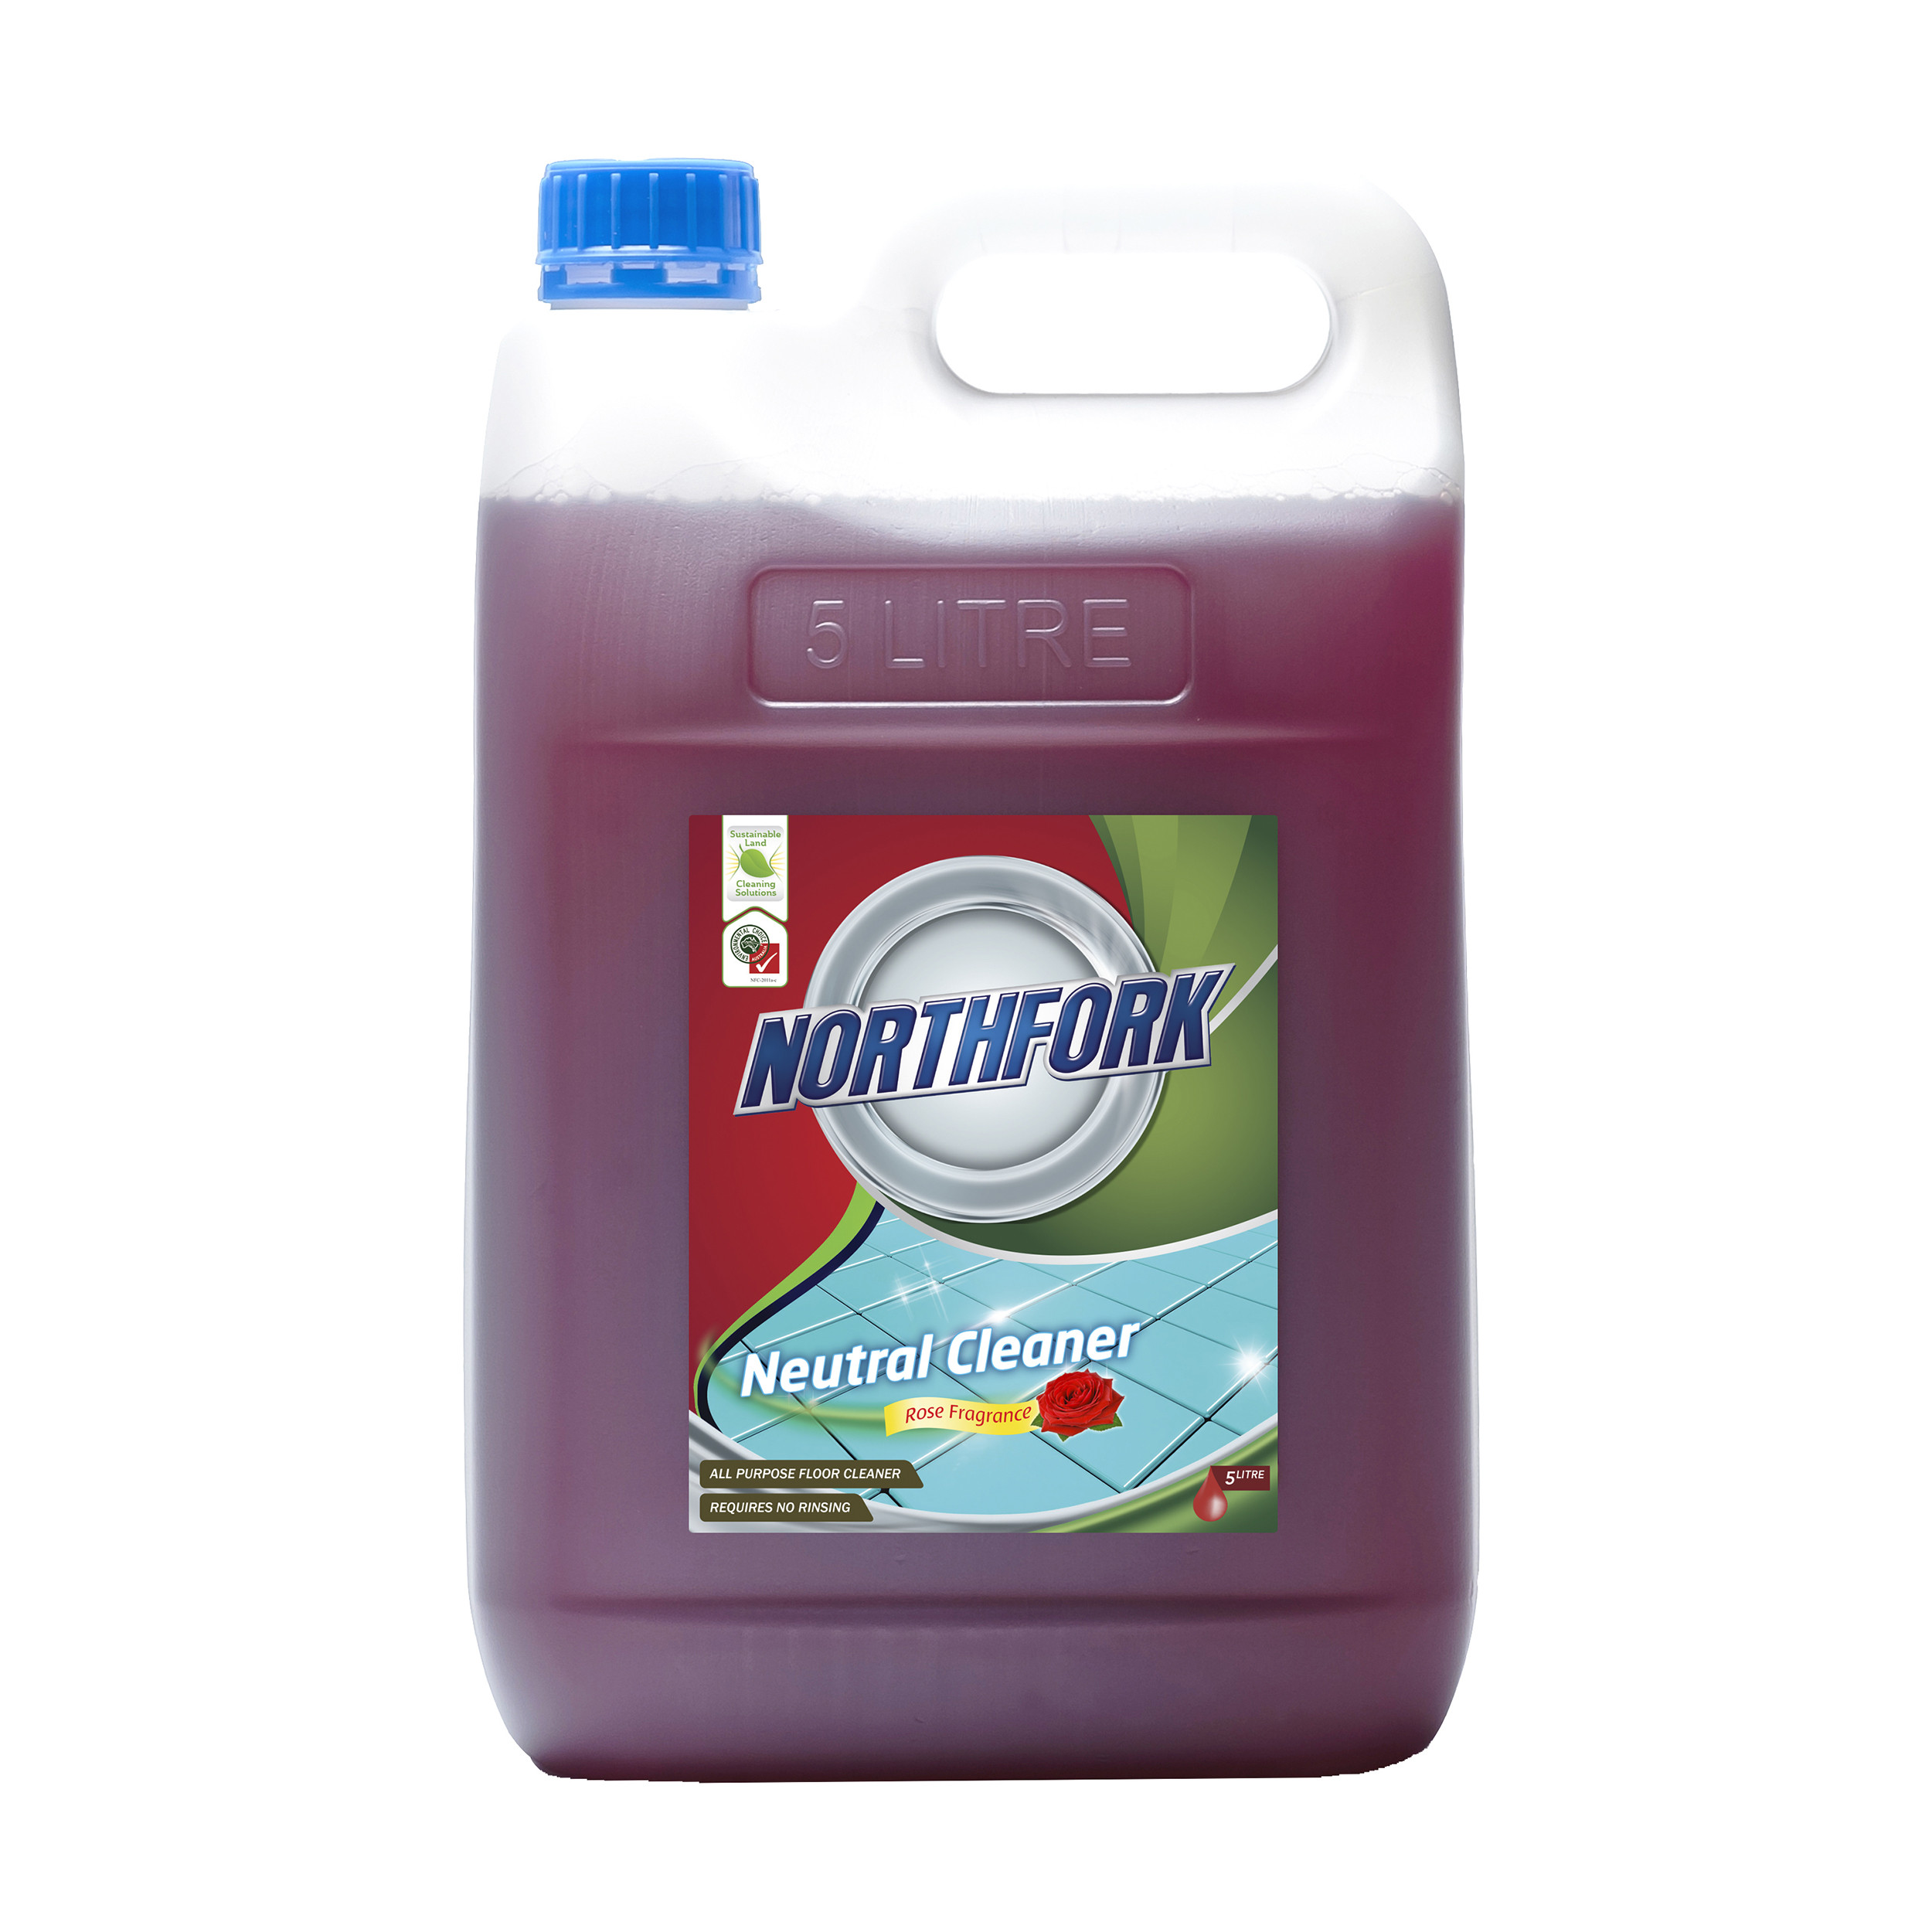 Northfork GECA Neutral Cleaner